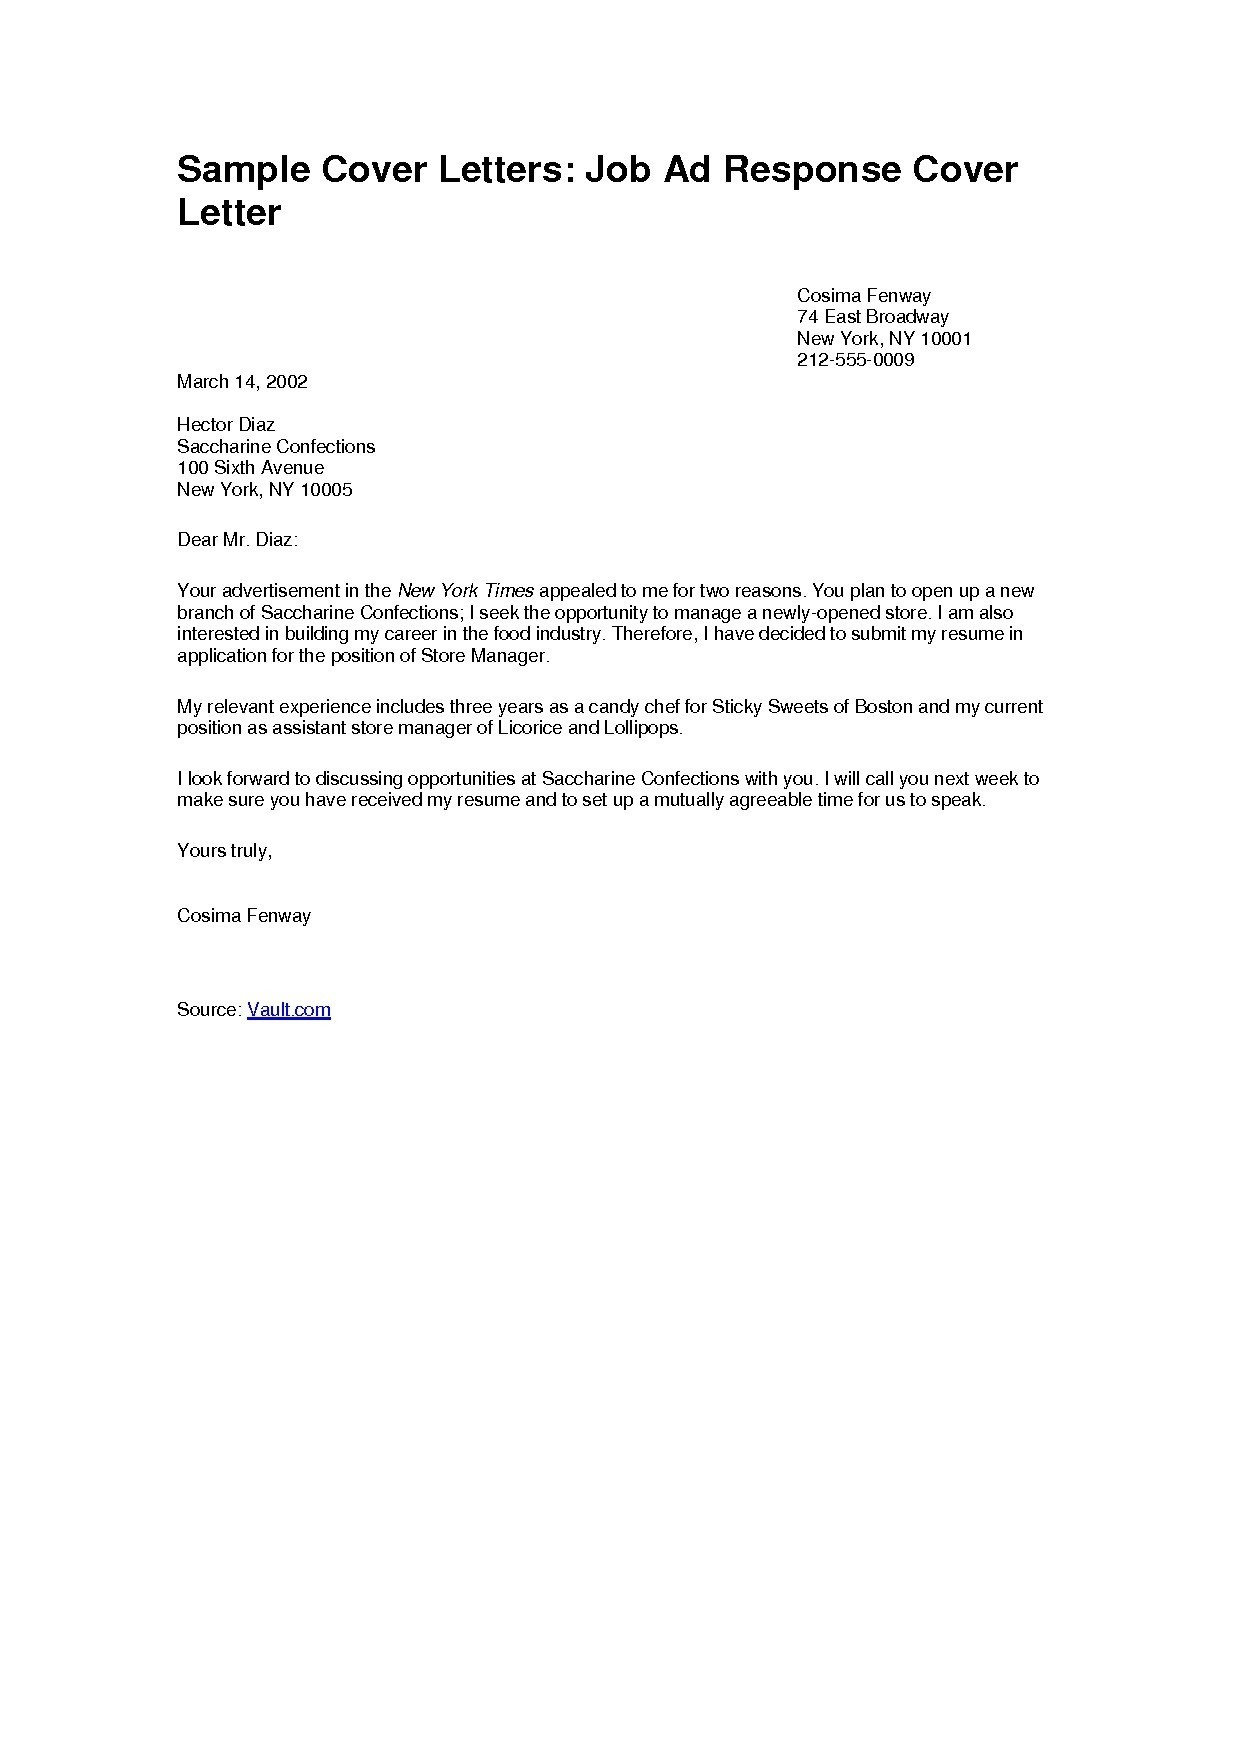 Cover letter sample for job application template samples for Copies of cover letters for employment